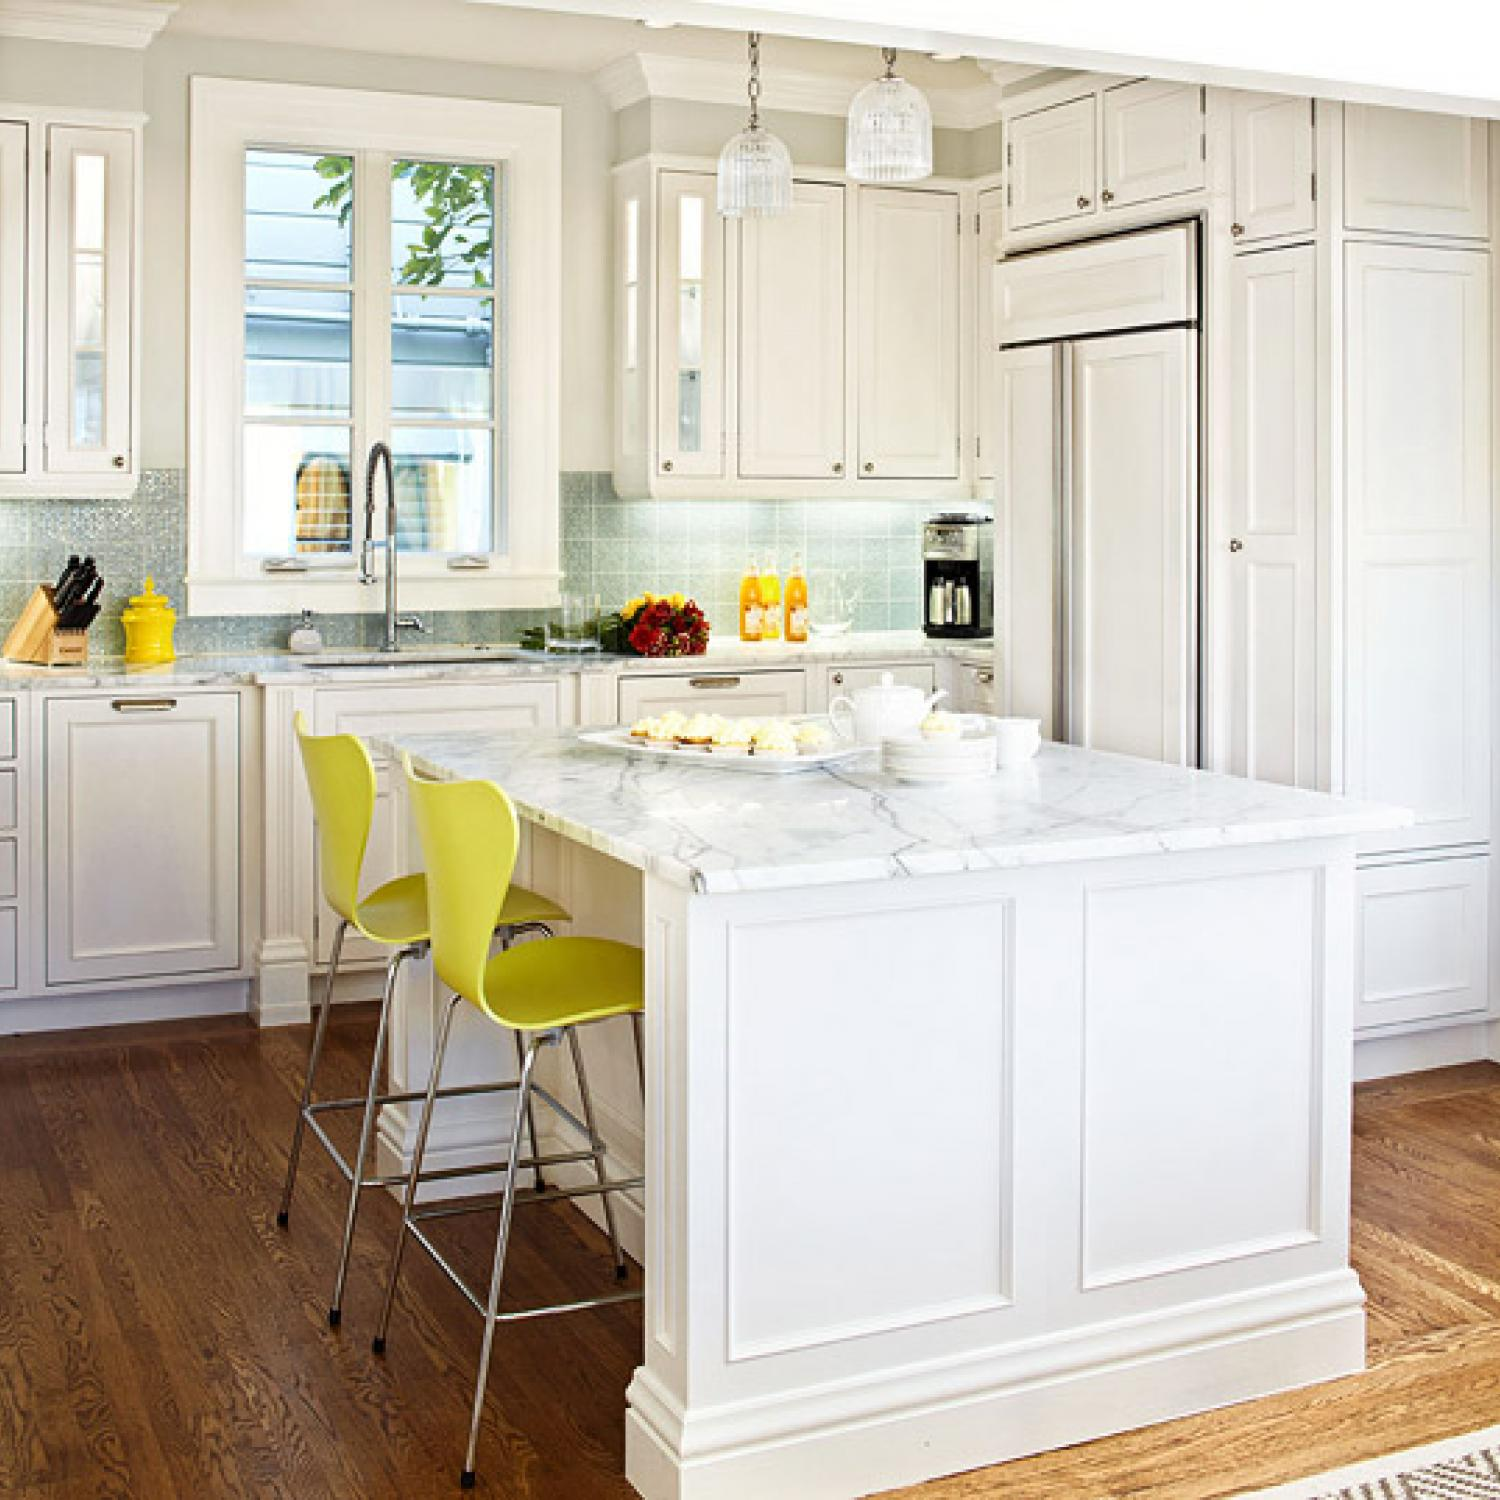 Home Design Color Ideas: Design Ideas For White Kitchens